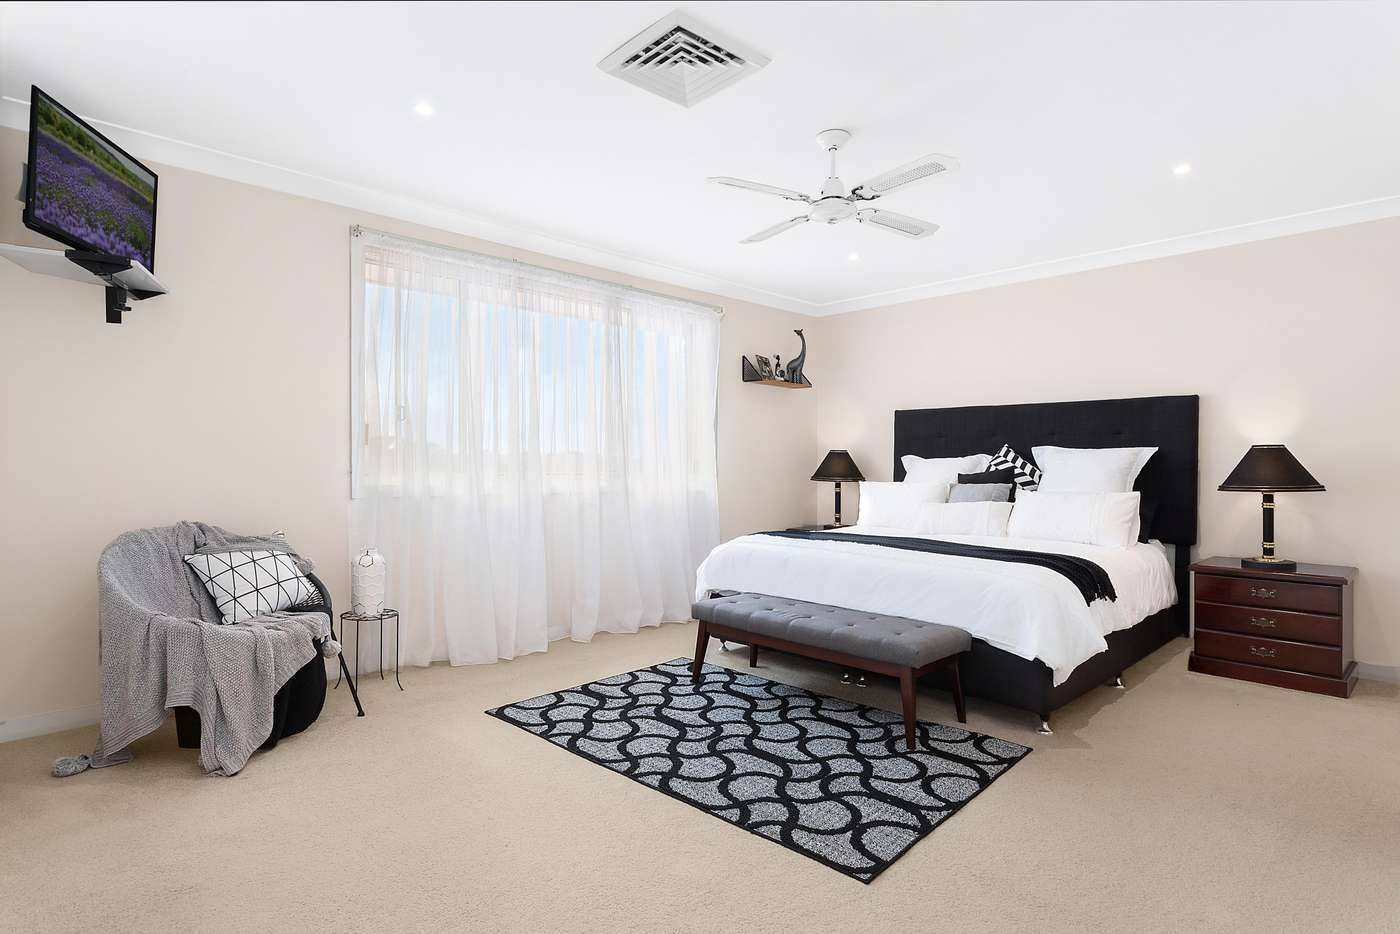 Seventh view of Homely house listing, 109 Heritage Way, Glen Alpine NSW 2560